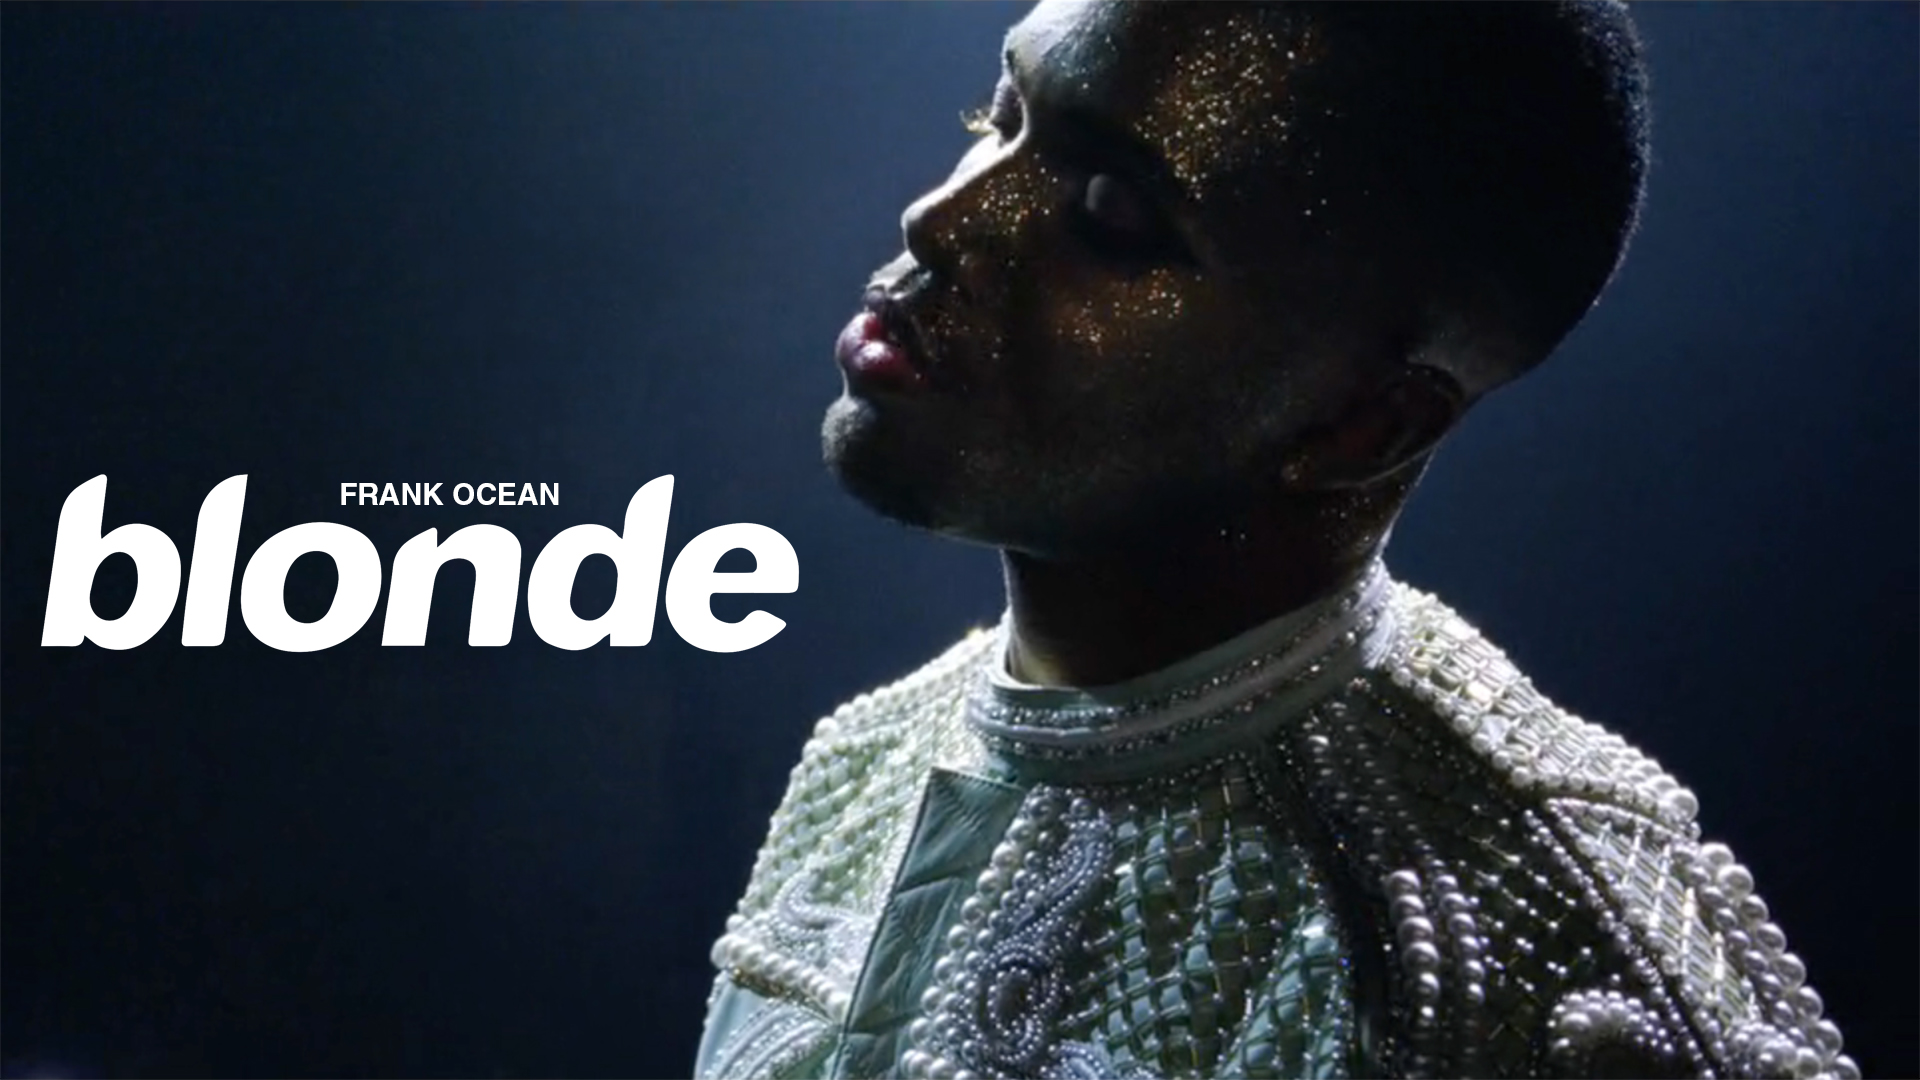 Frank Ocean Nikes Wallpapers [1920x1080] - Frank Ocean Nikes Music Video , HD Wallpaper & Backgrounds